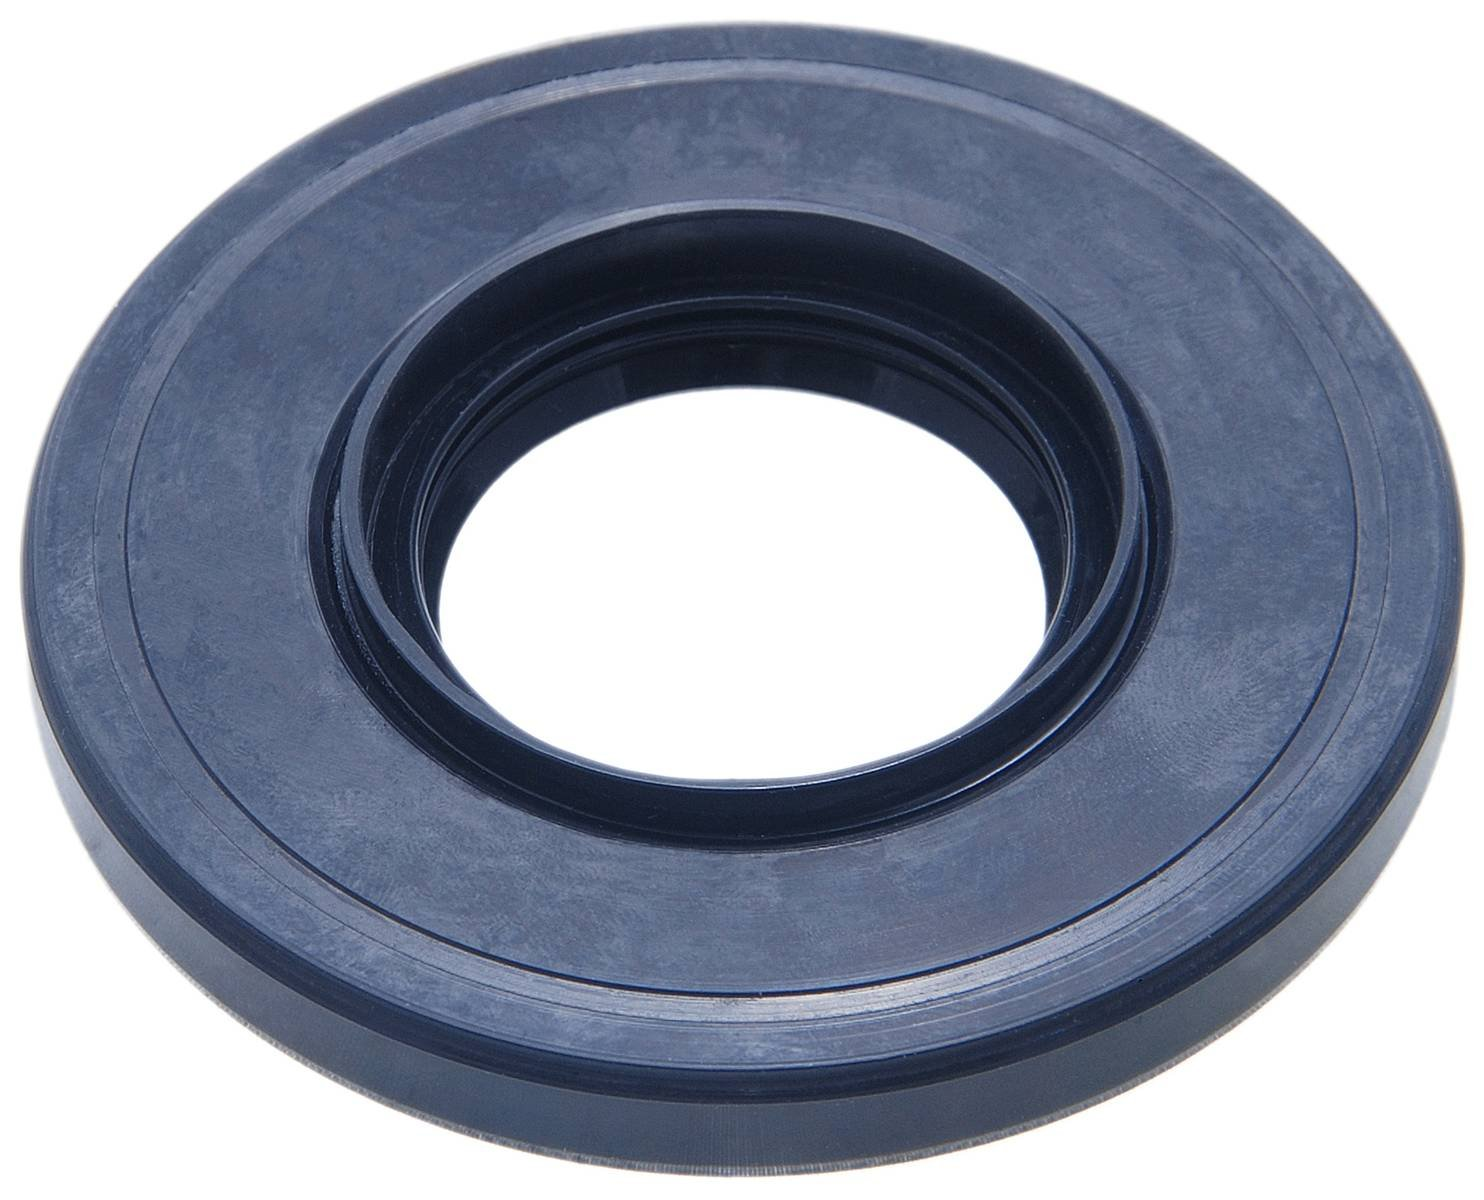 91202-Pwt-003 / 91202Pwt003 - Oil Seal (Axle Case) (35X78X8,6X11,5) For Honda